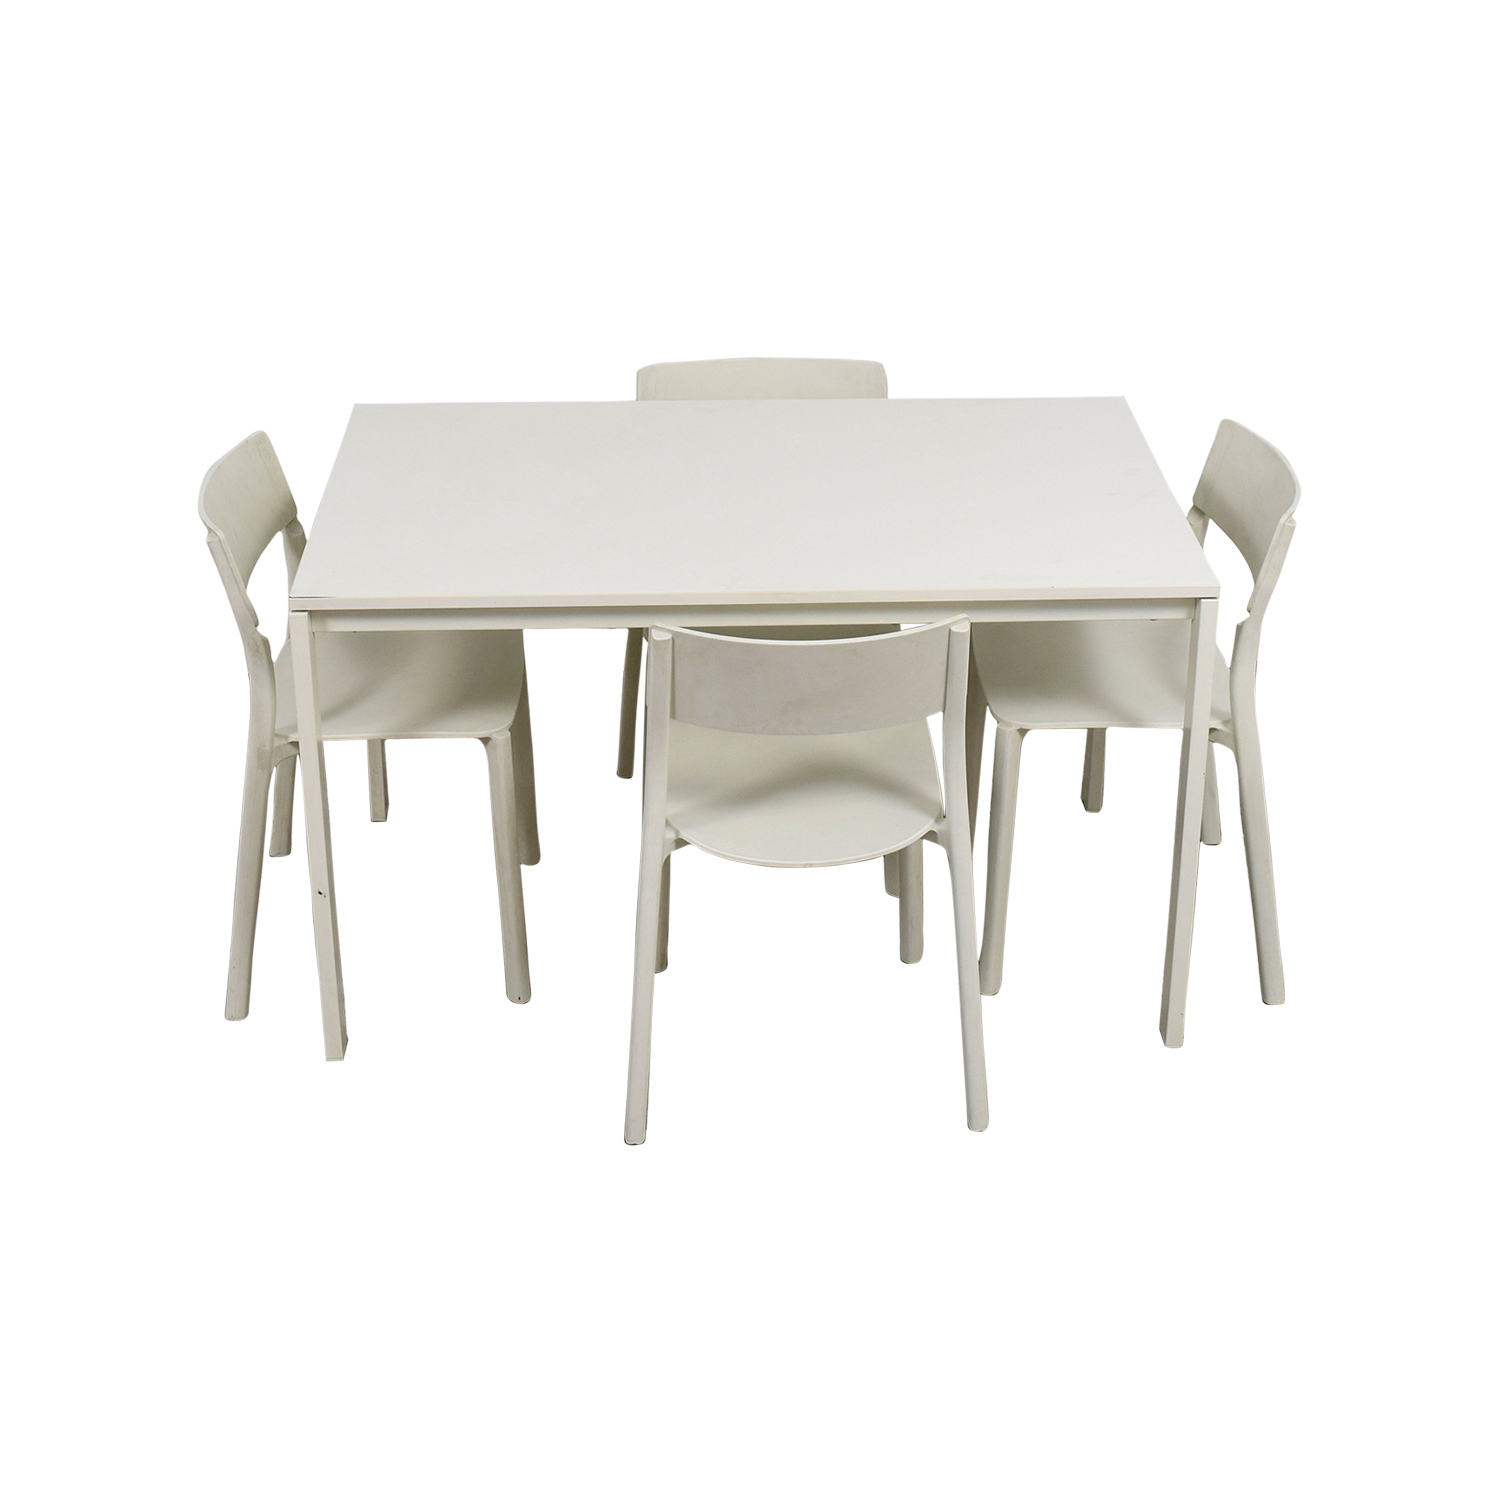 Dining sets used dining sets for sale for Ikea dining table and chairs set